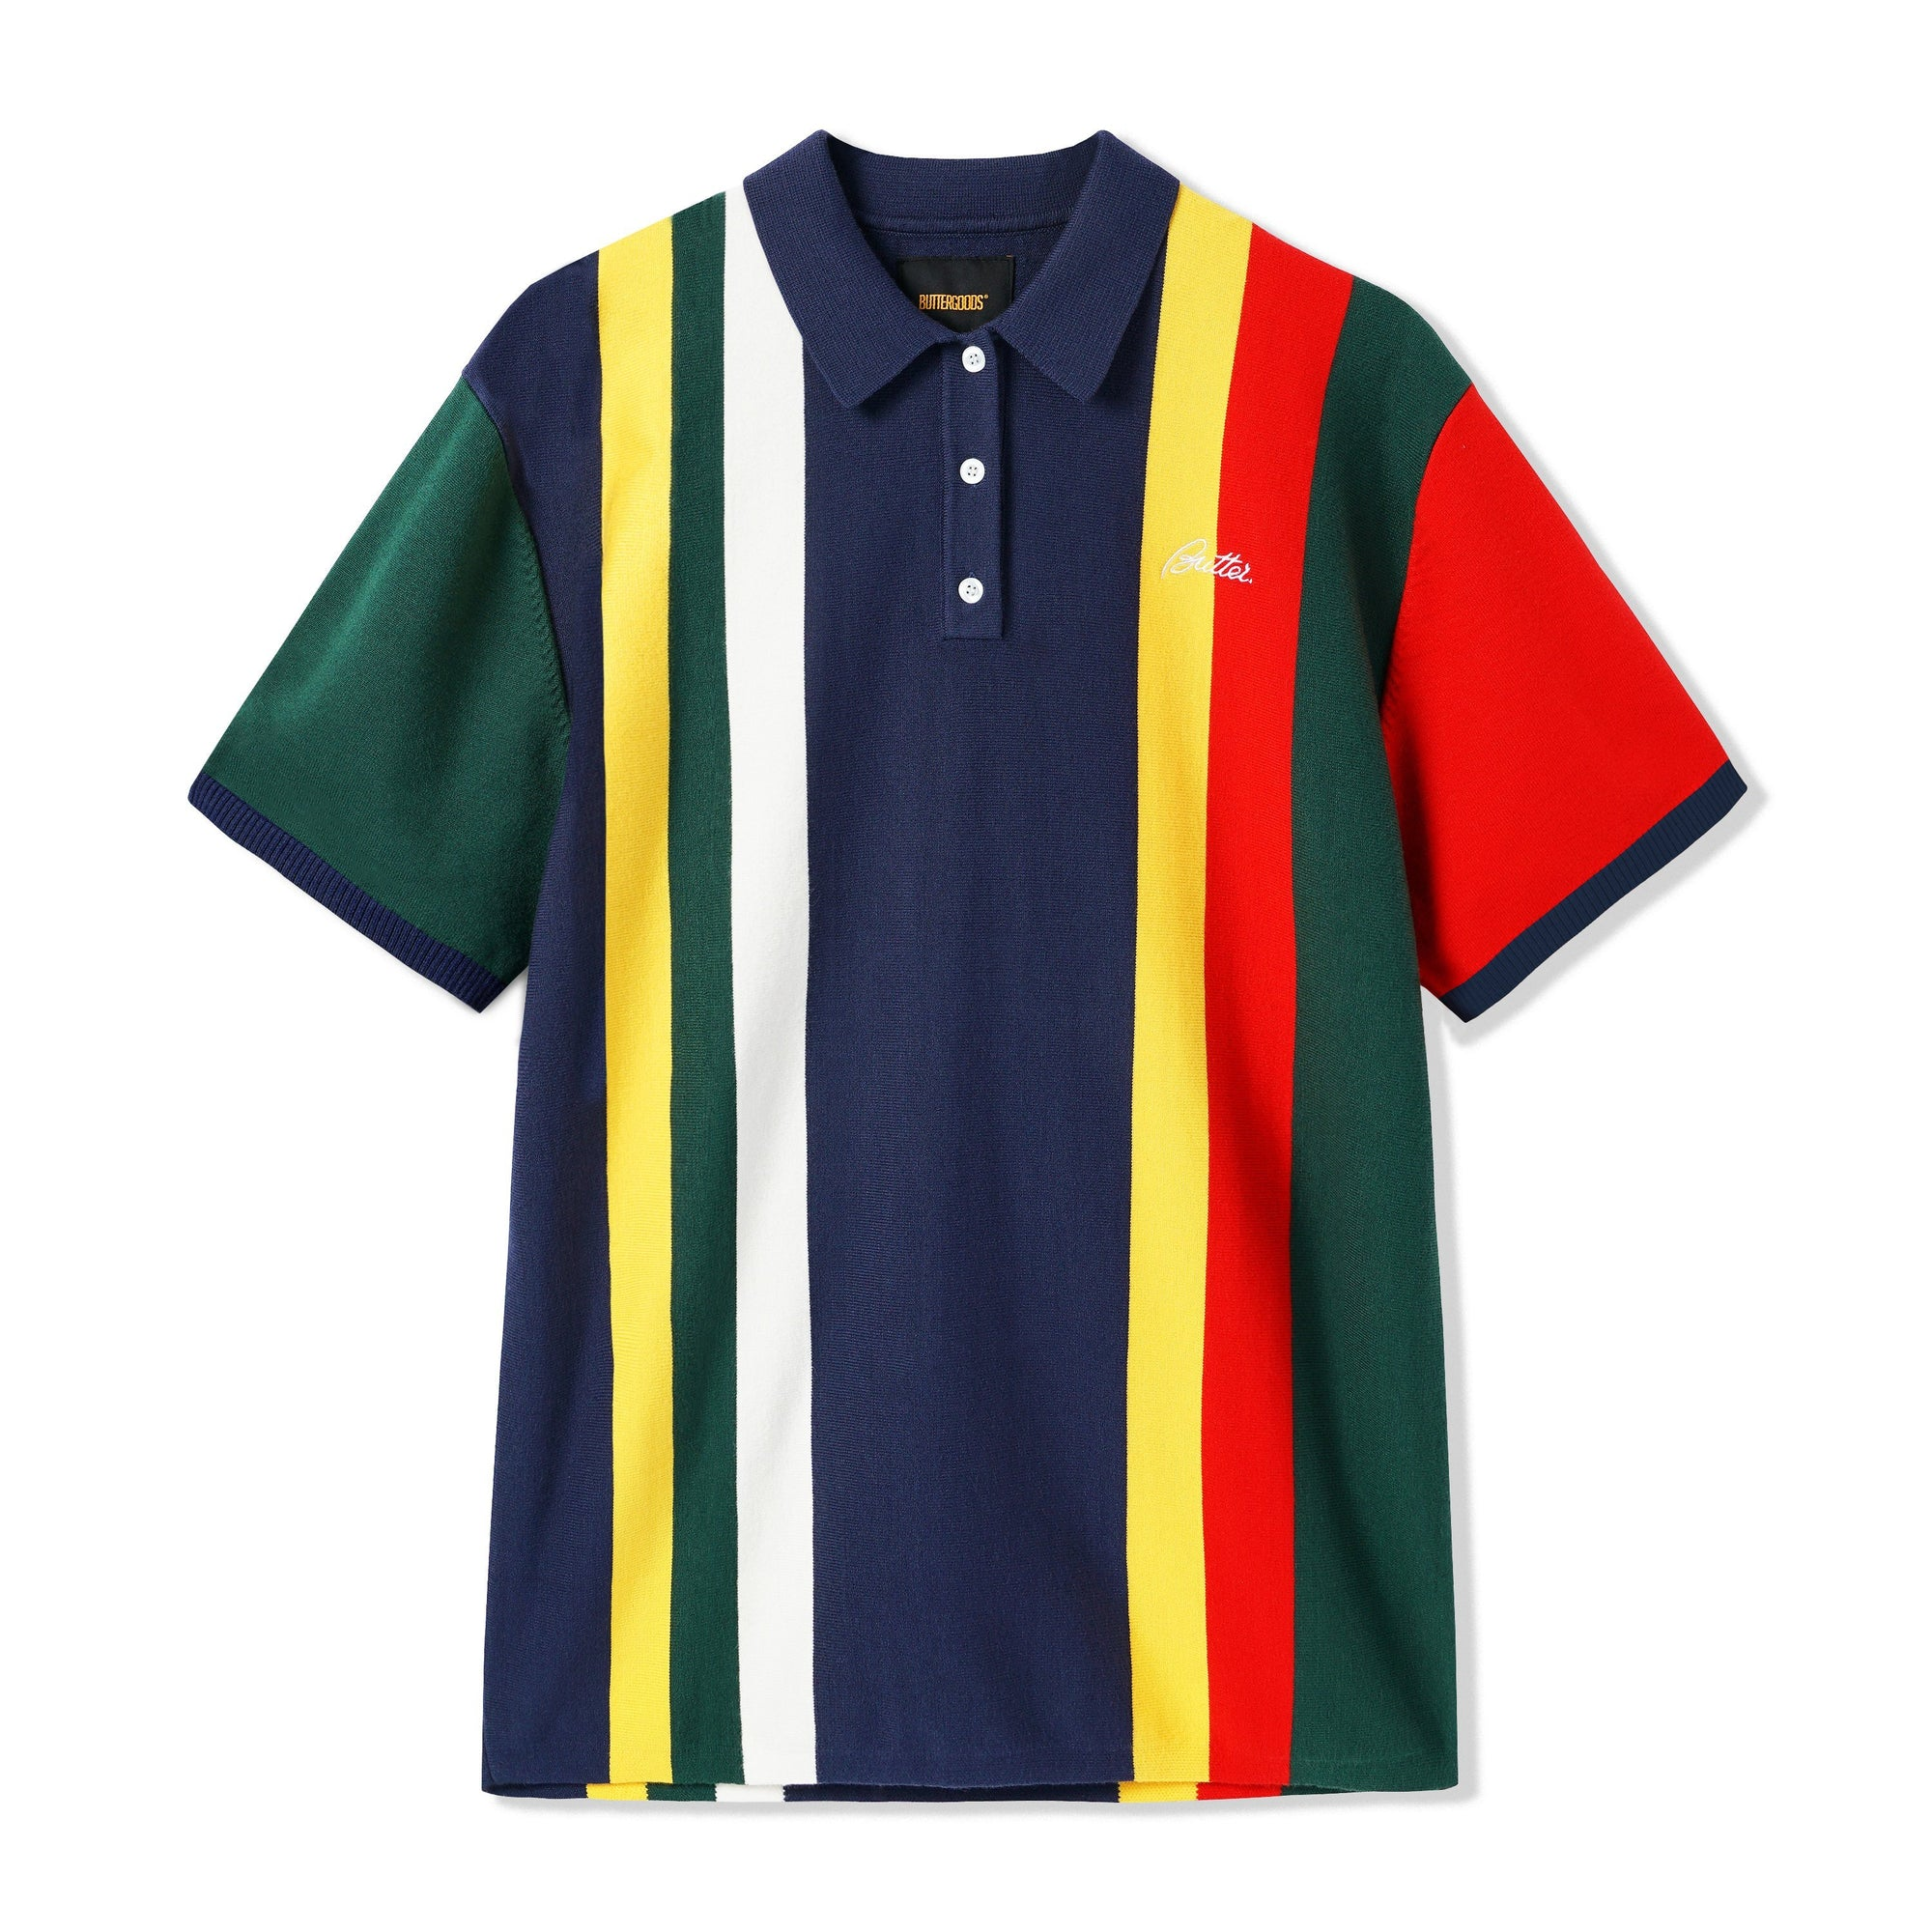 Butter Goods Santosuosso Polo Shirt Product Photo #1